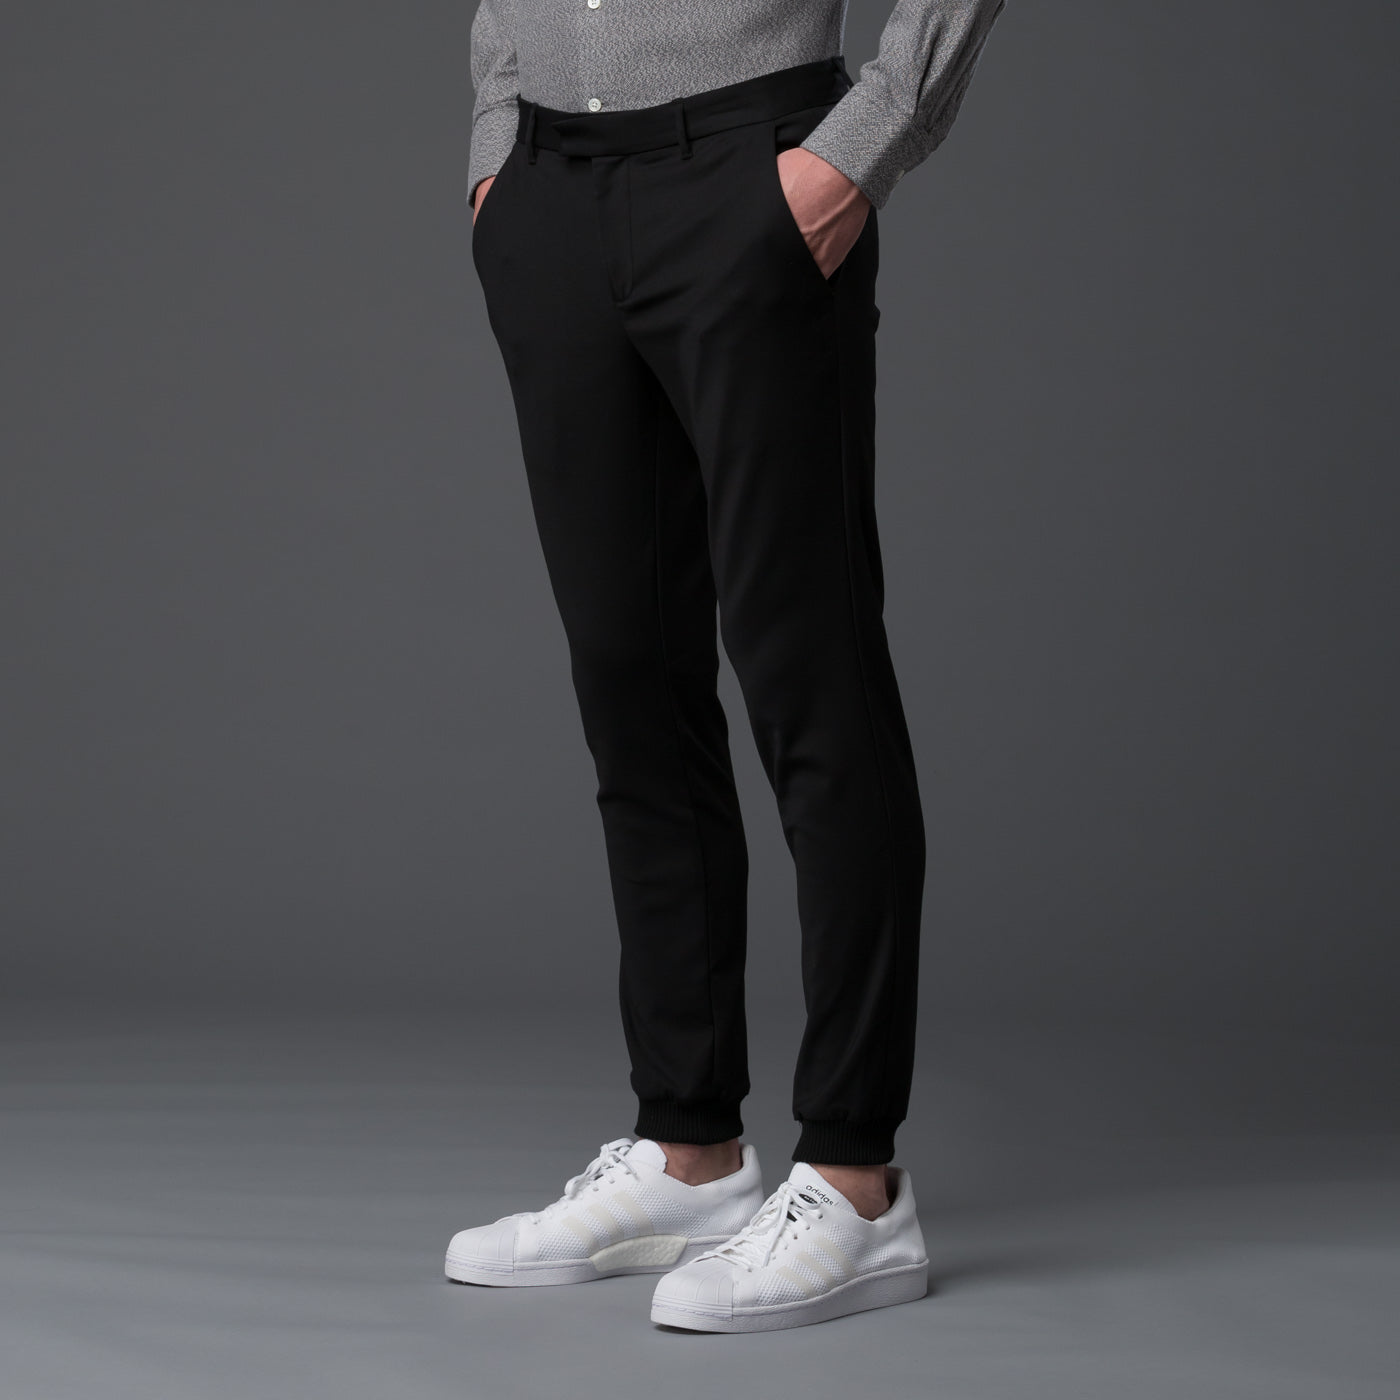 Garciavelez Black Sweatpants